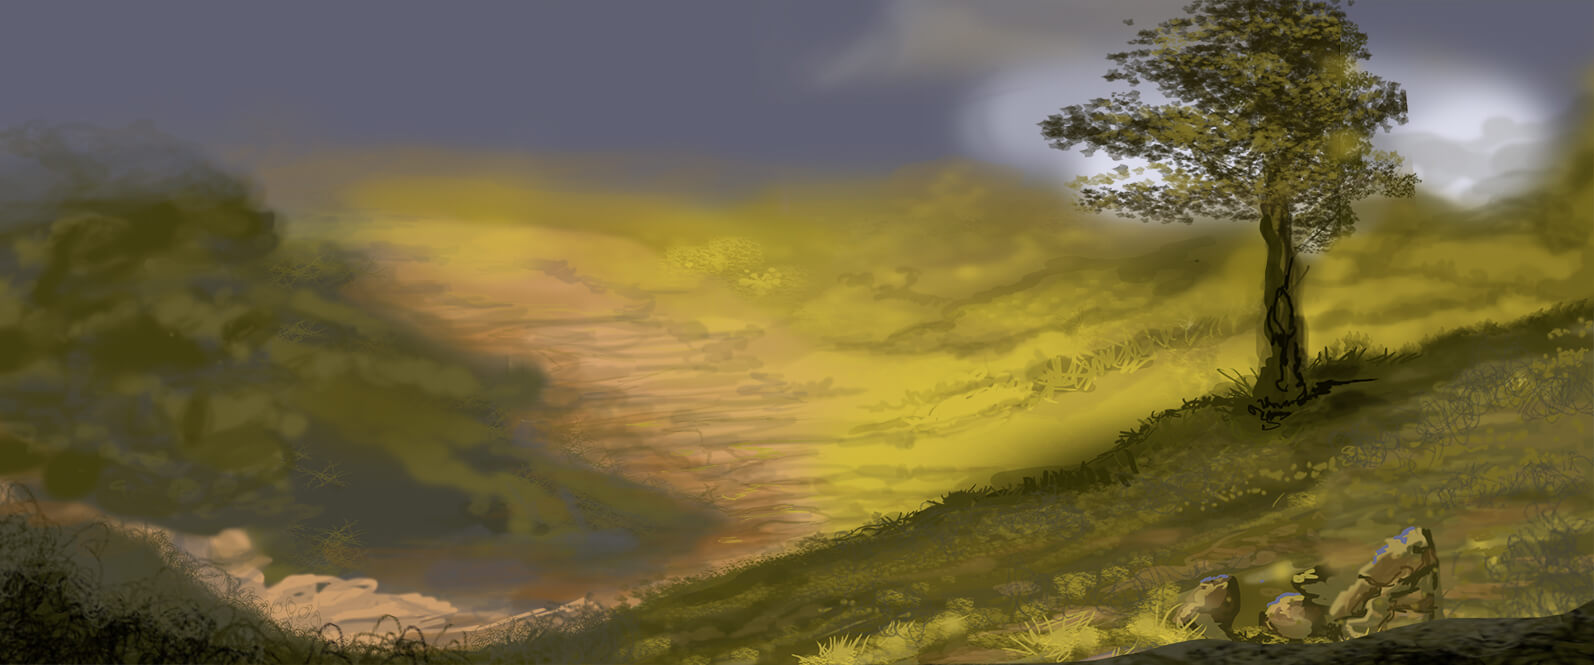 Title: Mountain Scene 10  Digital painting Size: 24 x 32 x 0.1 cm Year: 2018